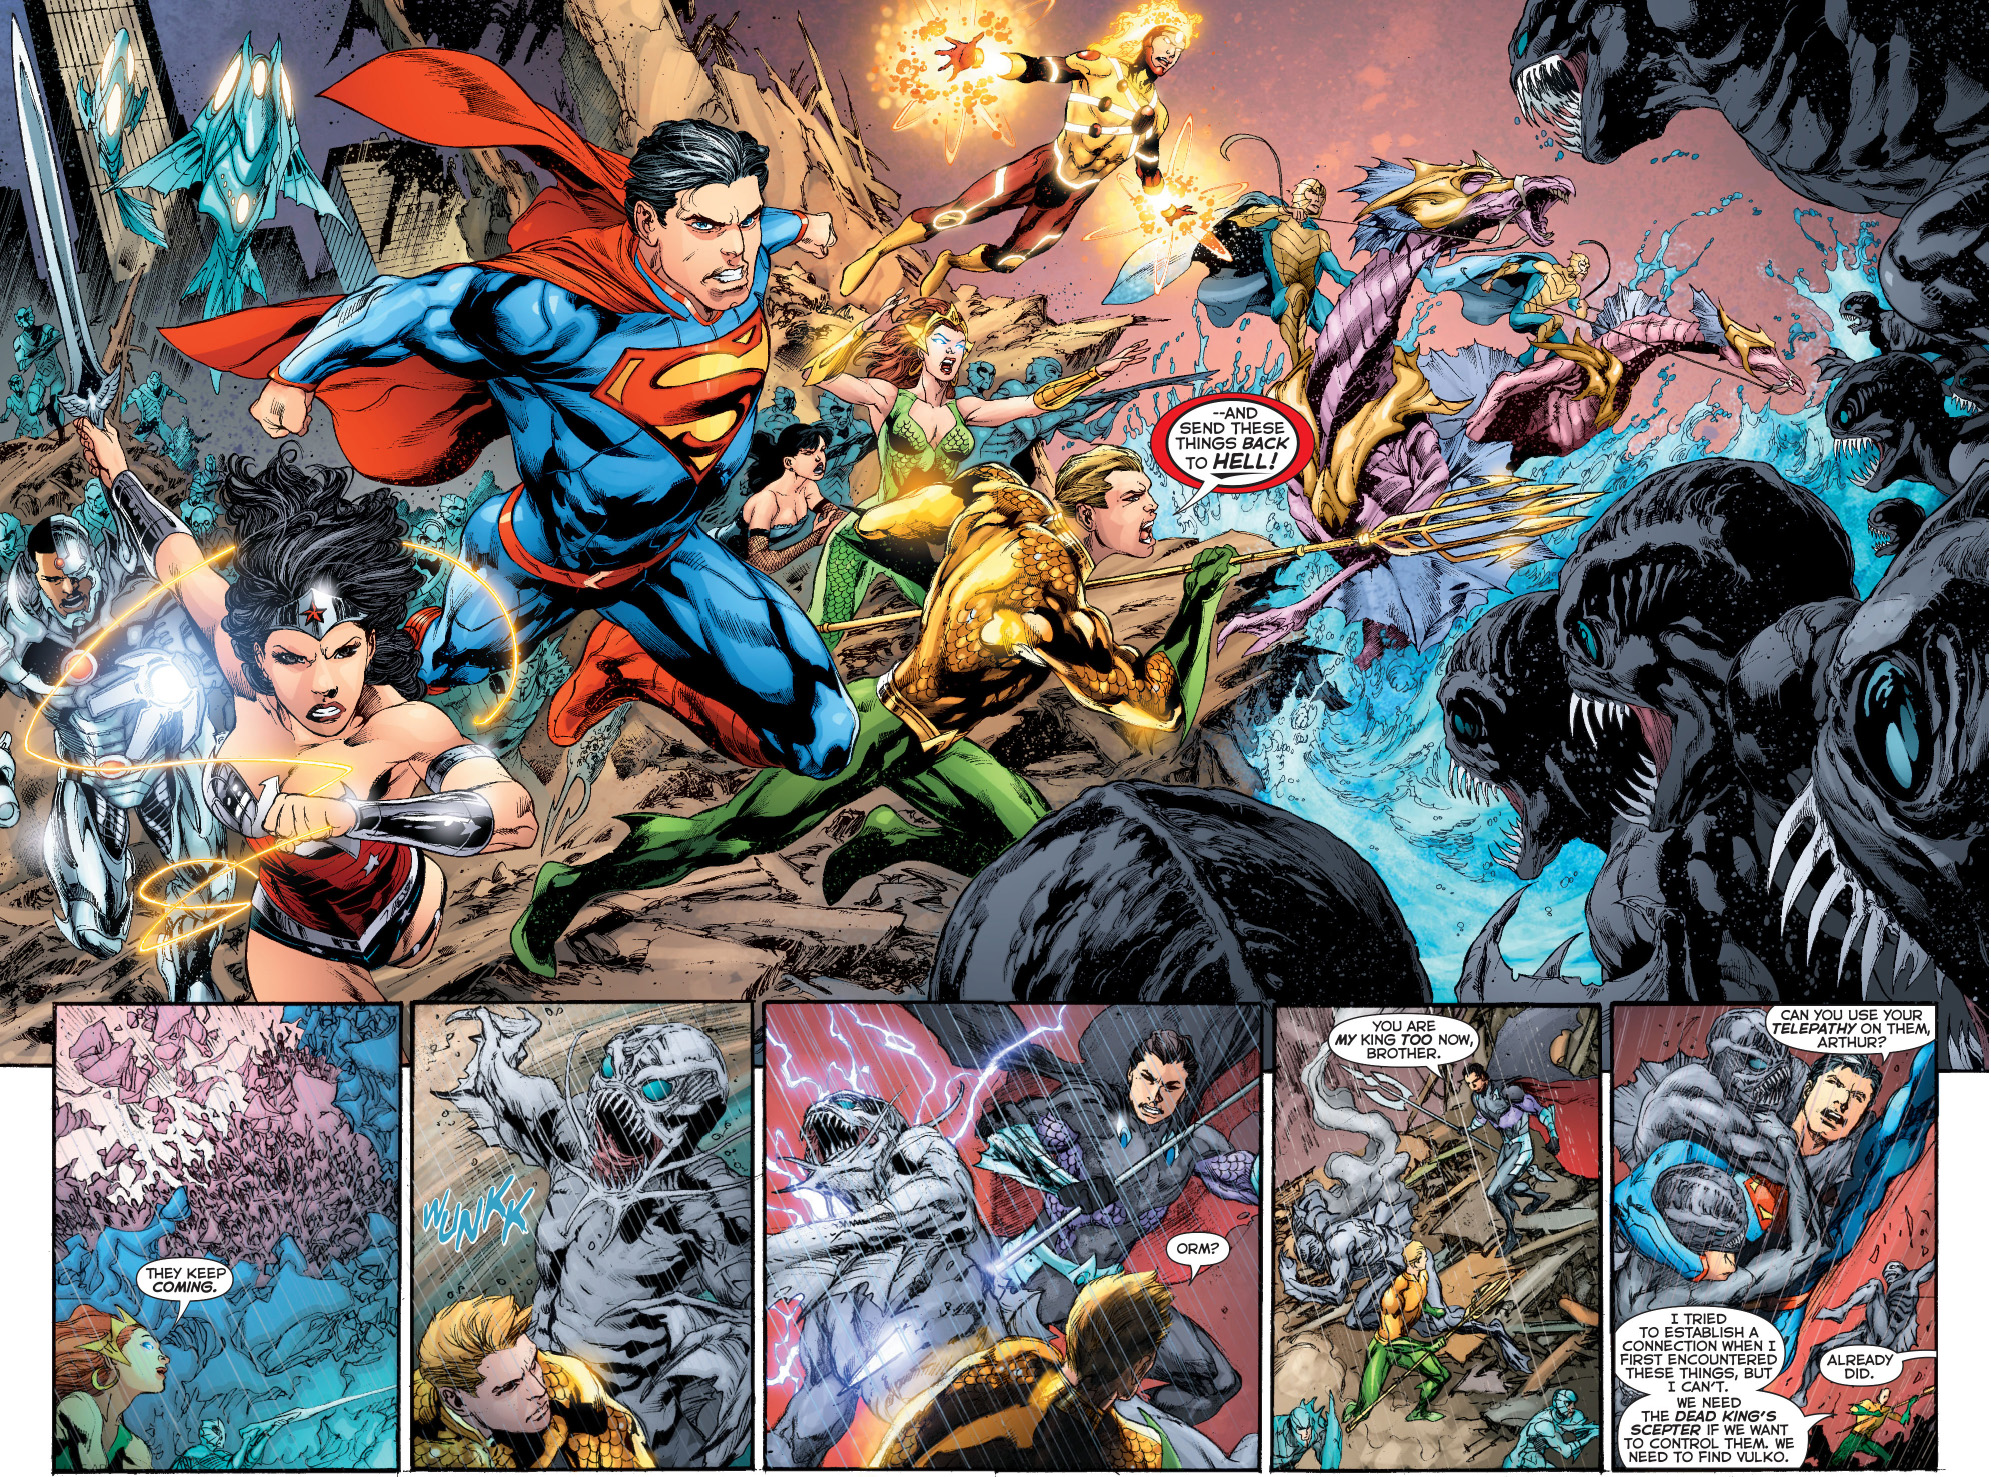 The Avegners Wallpaper Quotes Justice League And Atlanteans Vs The Trench Comicnewbies